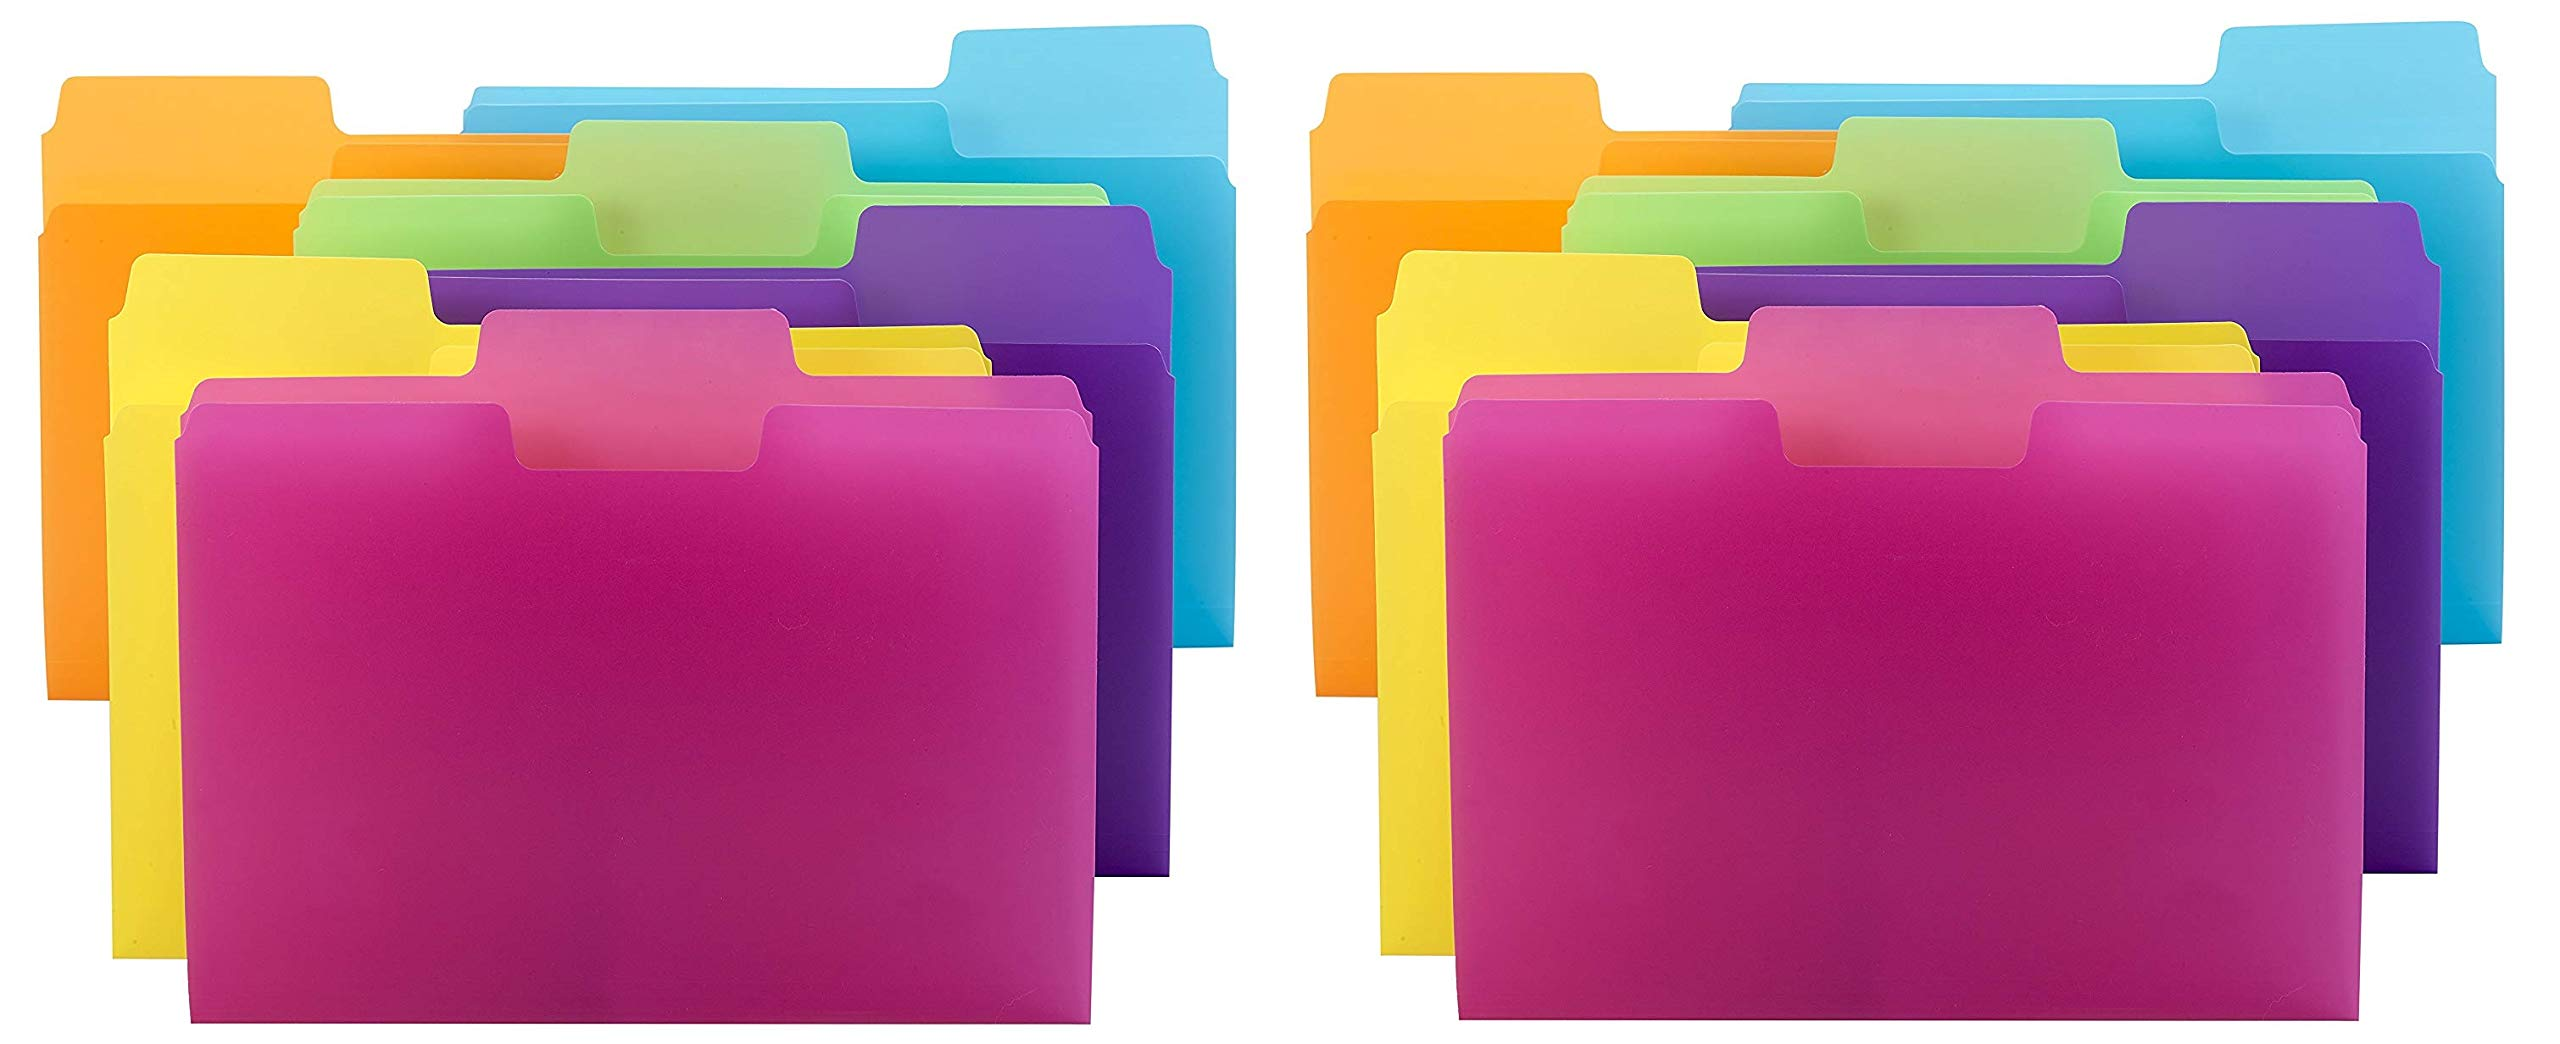 Smead SuperTab File Folder, Oversized 1/3-Cut tab, Letter Size, Poly, 18 per Pack (10515) - 2 Pack by Smead